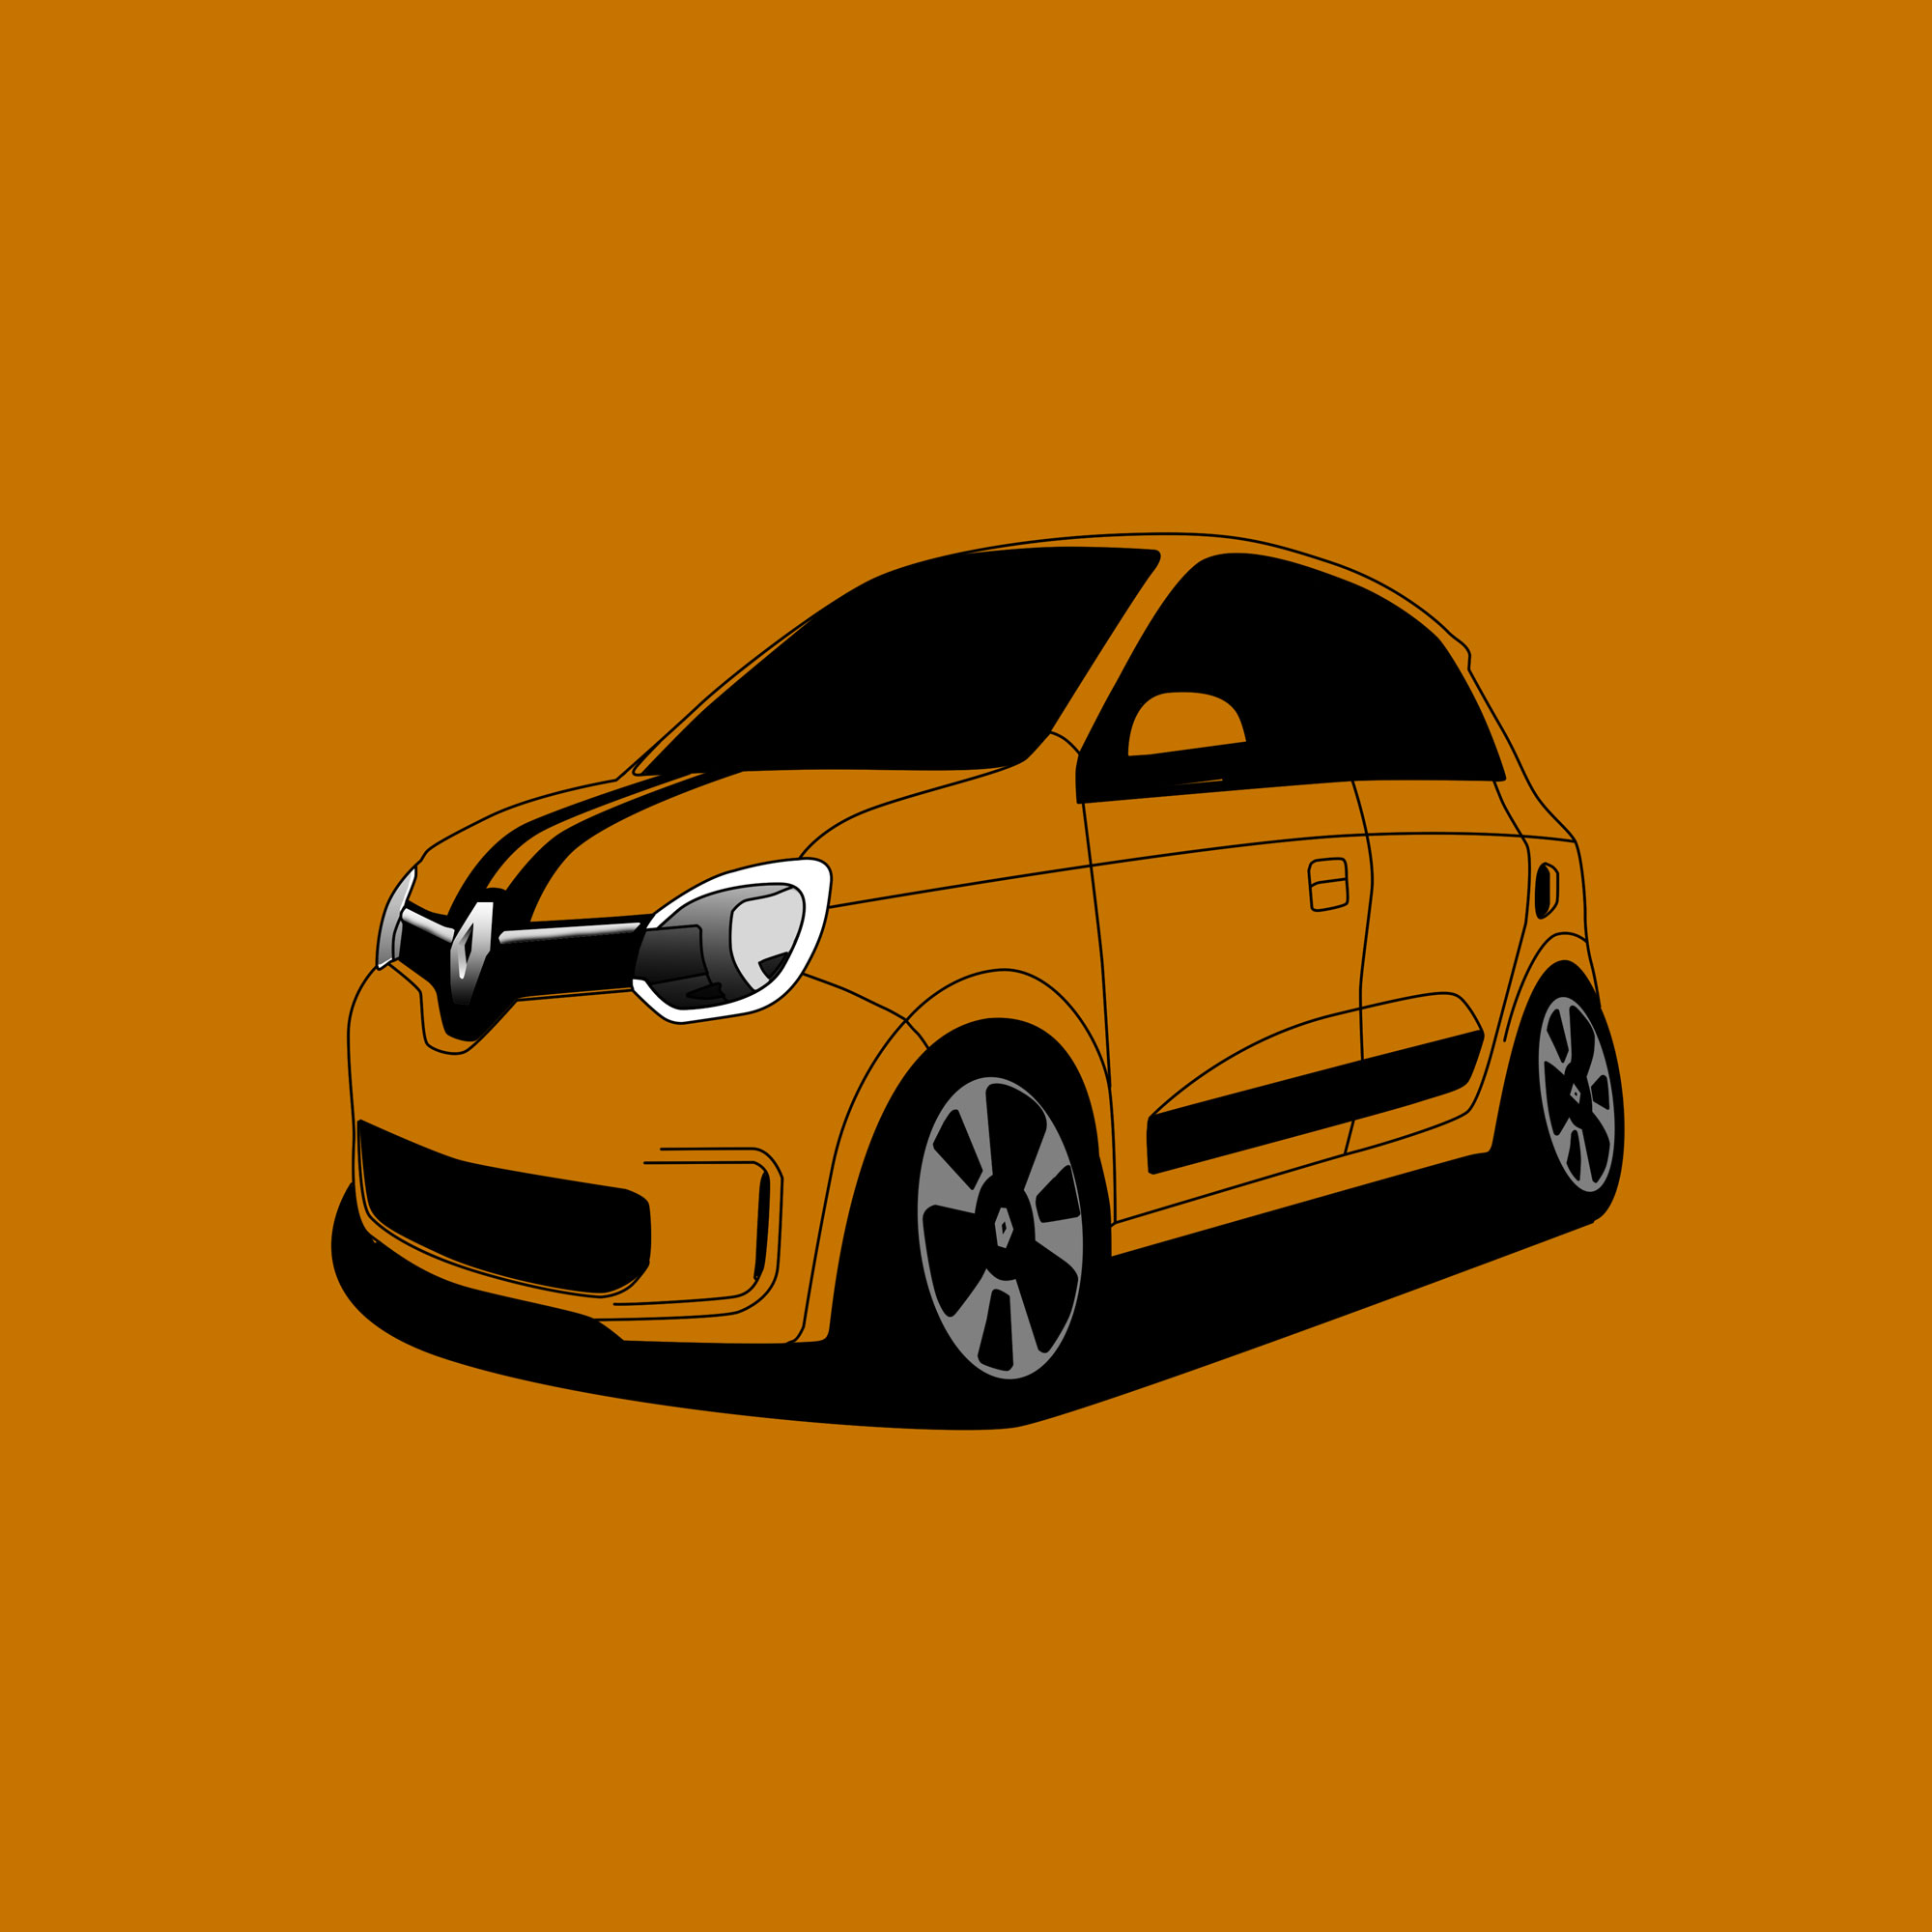 Renault Twingo 3 - Cartoon by vtstegofo